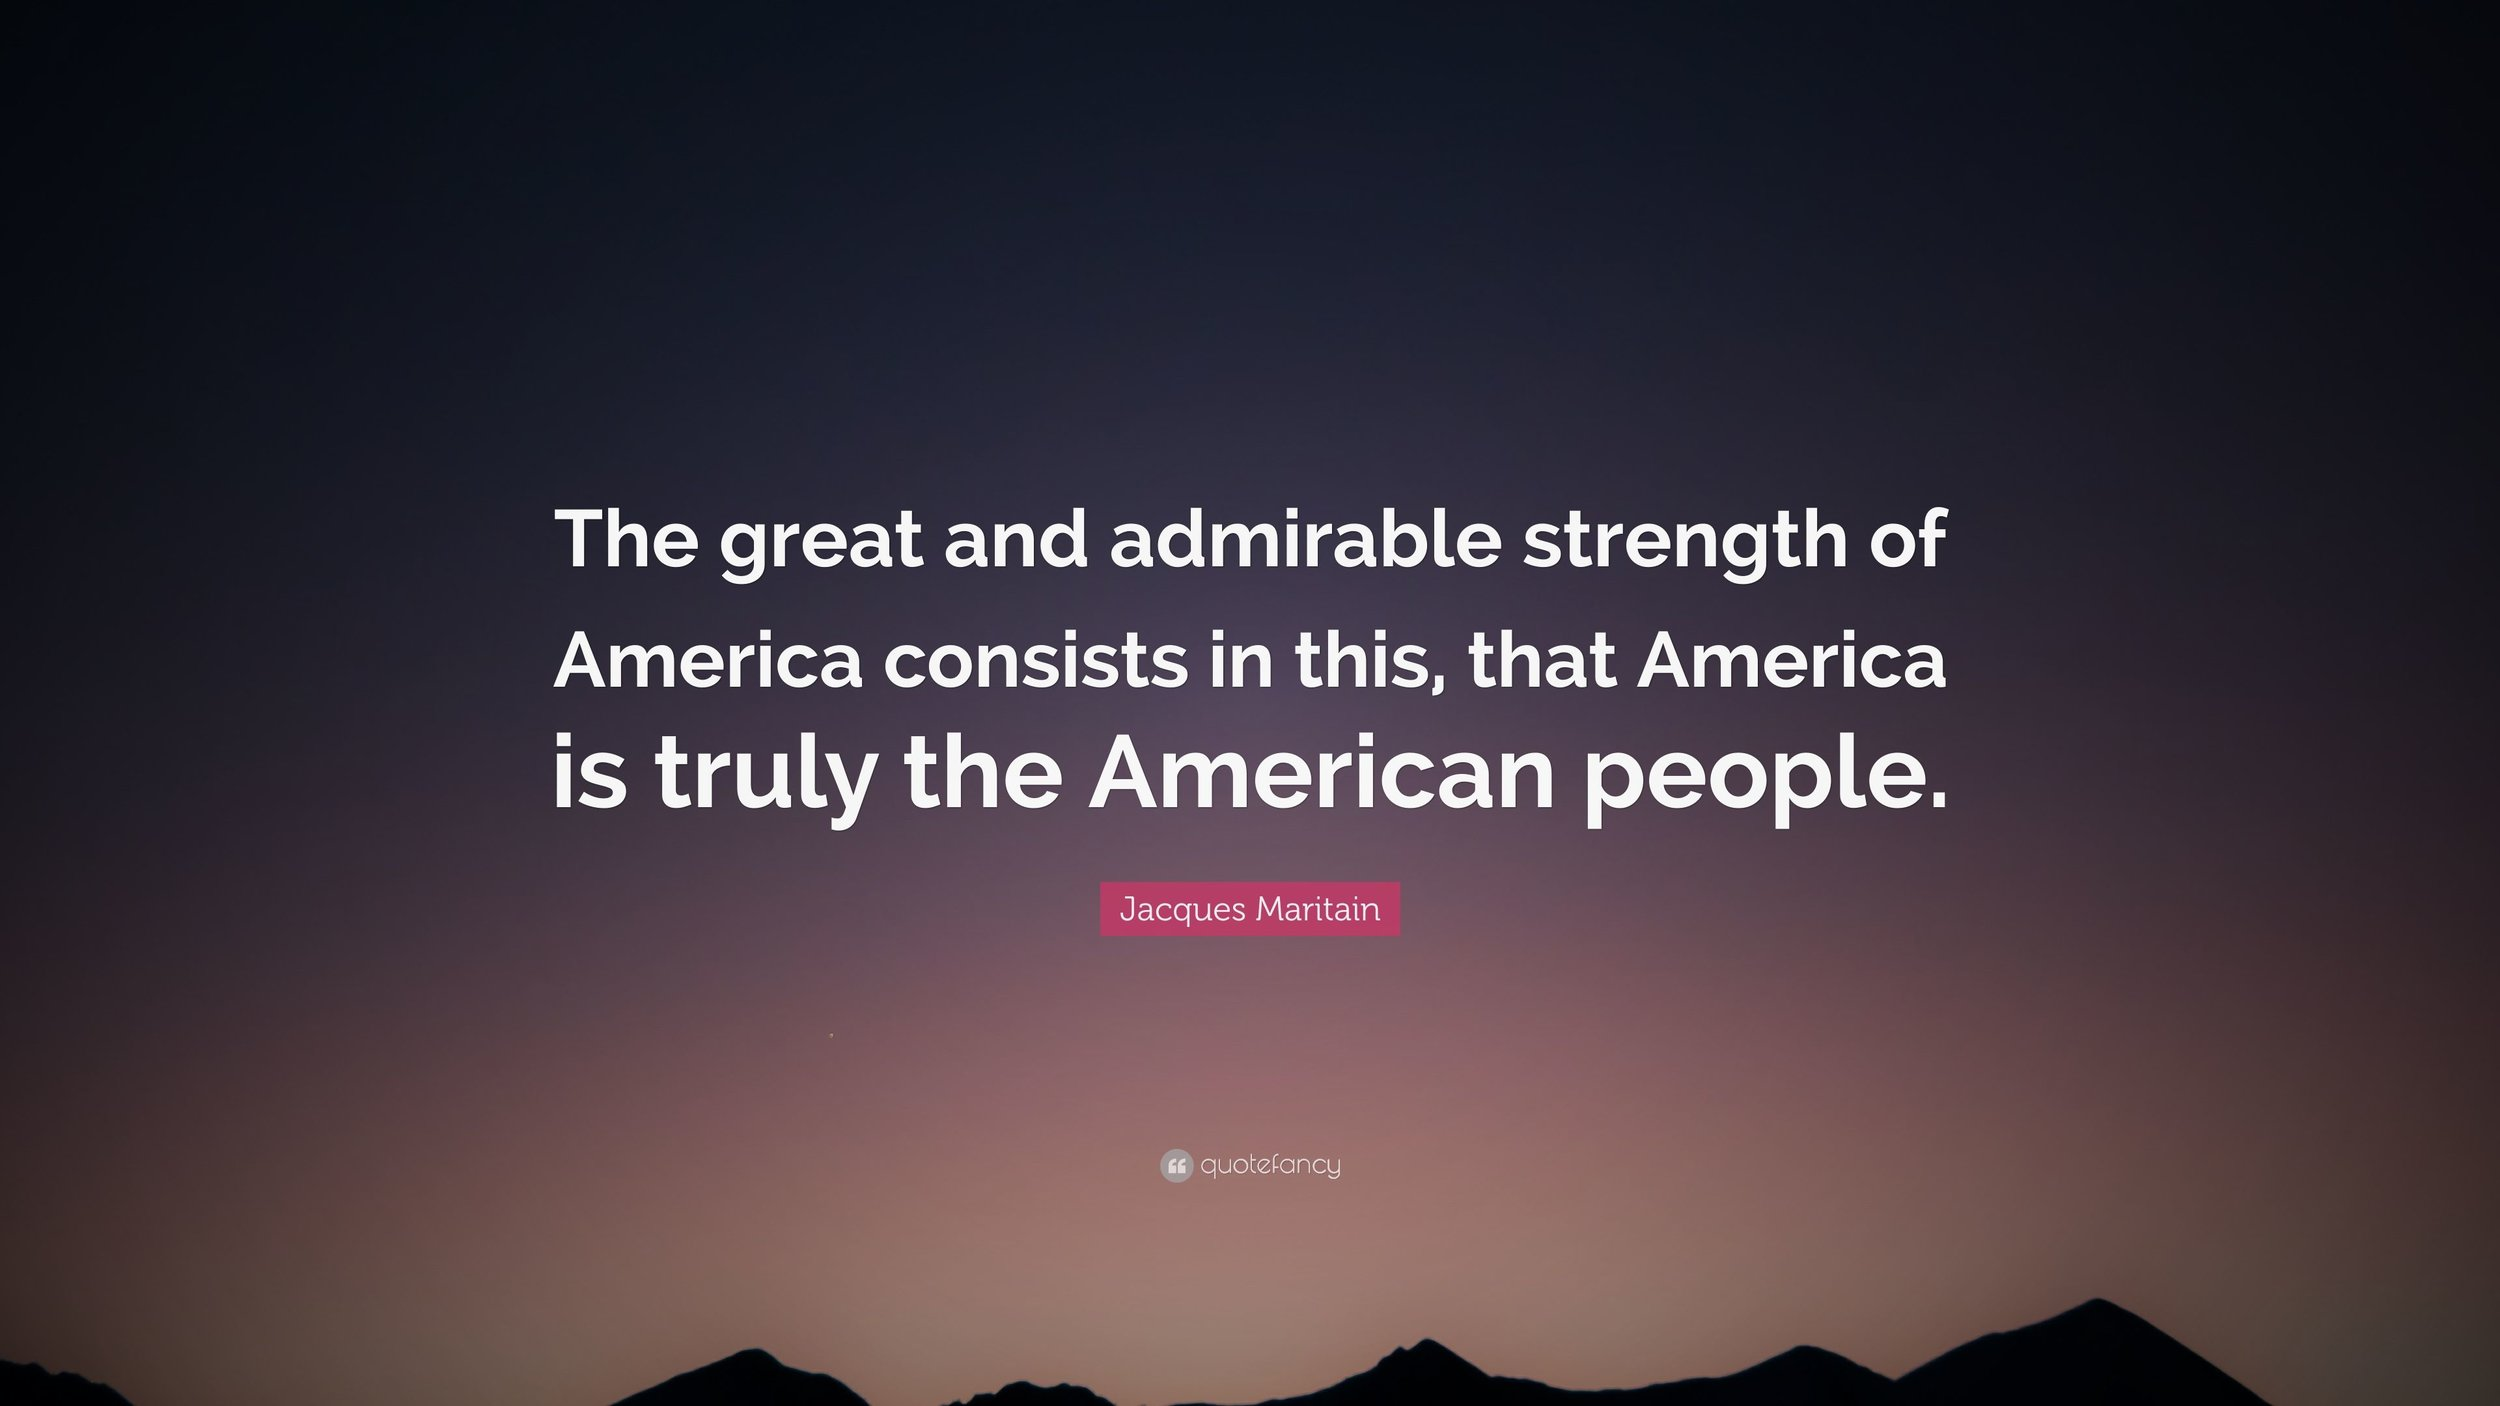 3472881-Jacques-Maritain-Quote-The-great-and-admirable-strength-of-America.jpg